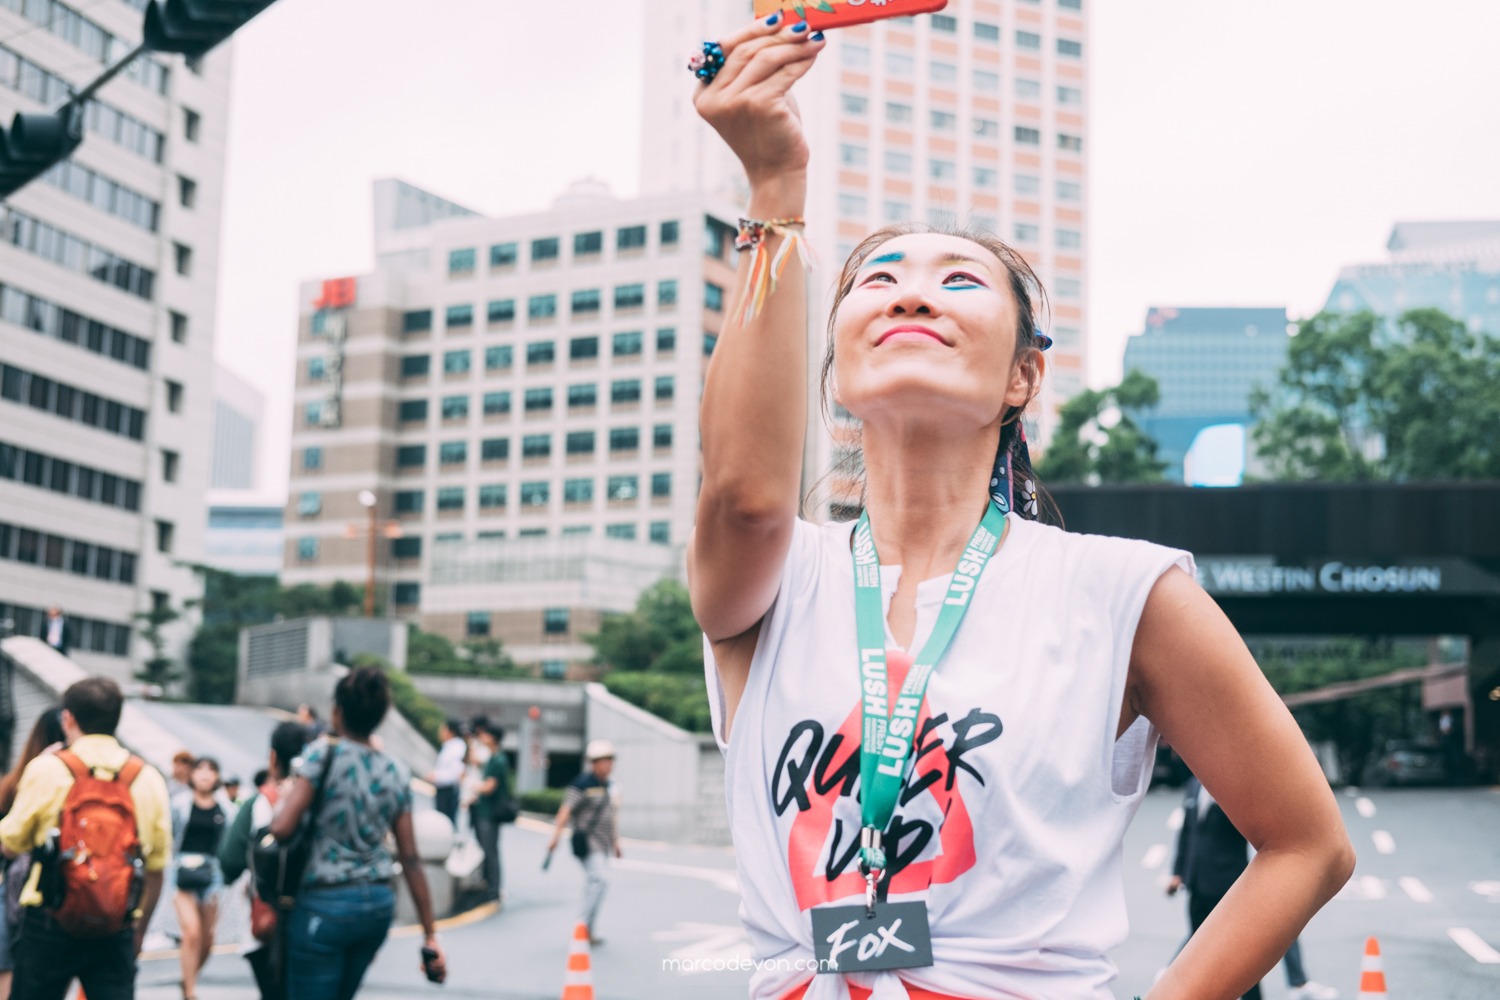 seoul pride photographer 19